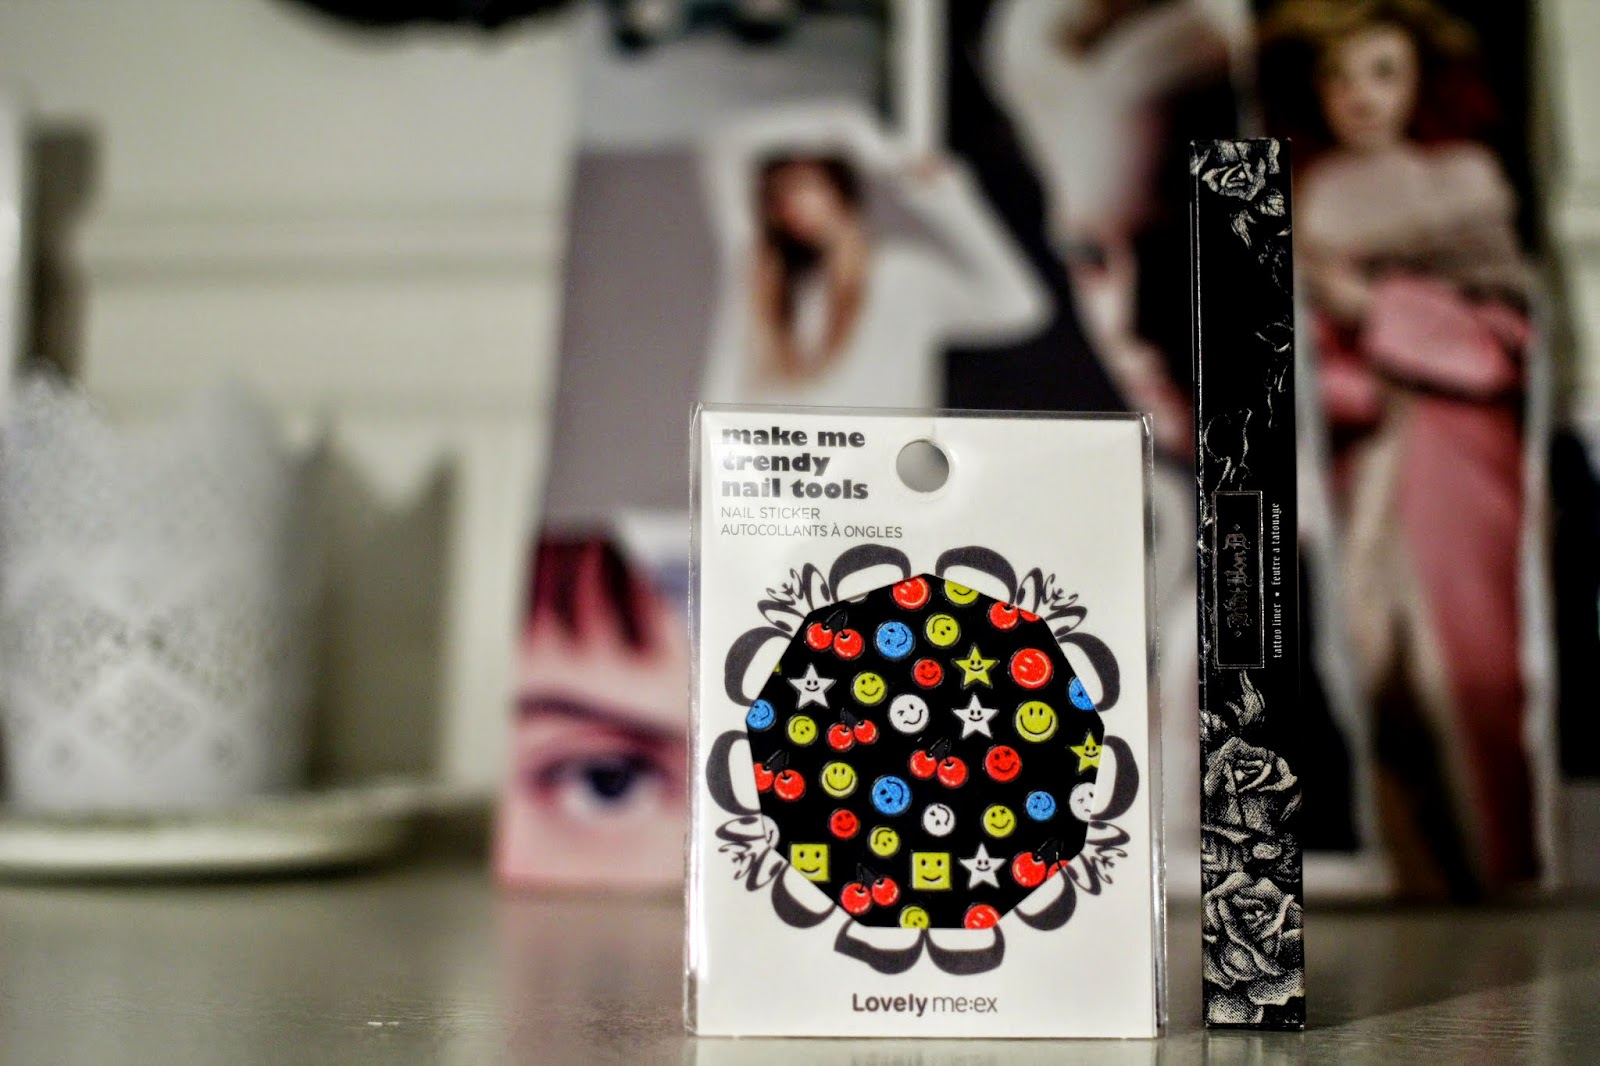 nail art stickers, Face shop make me trendy, Kat Von D tattoo eyeliner